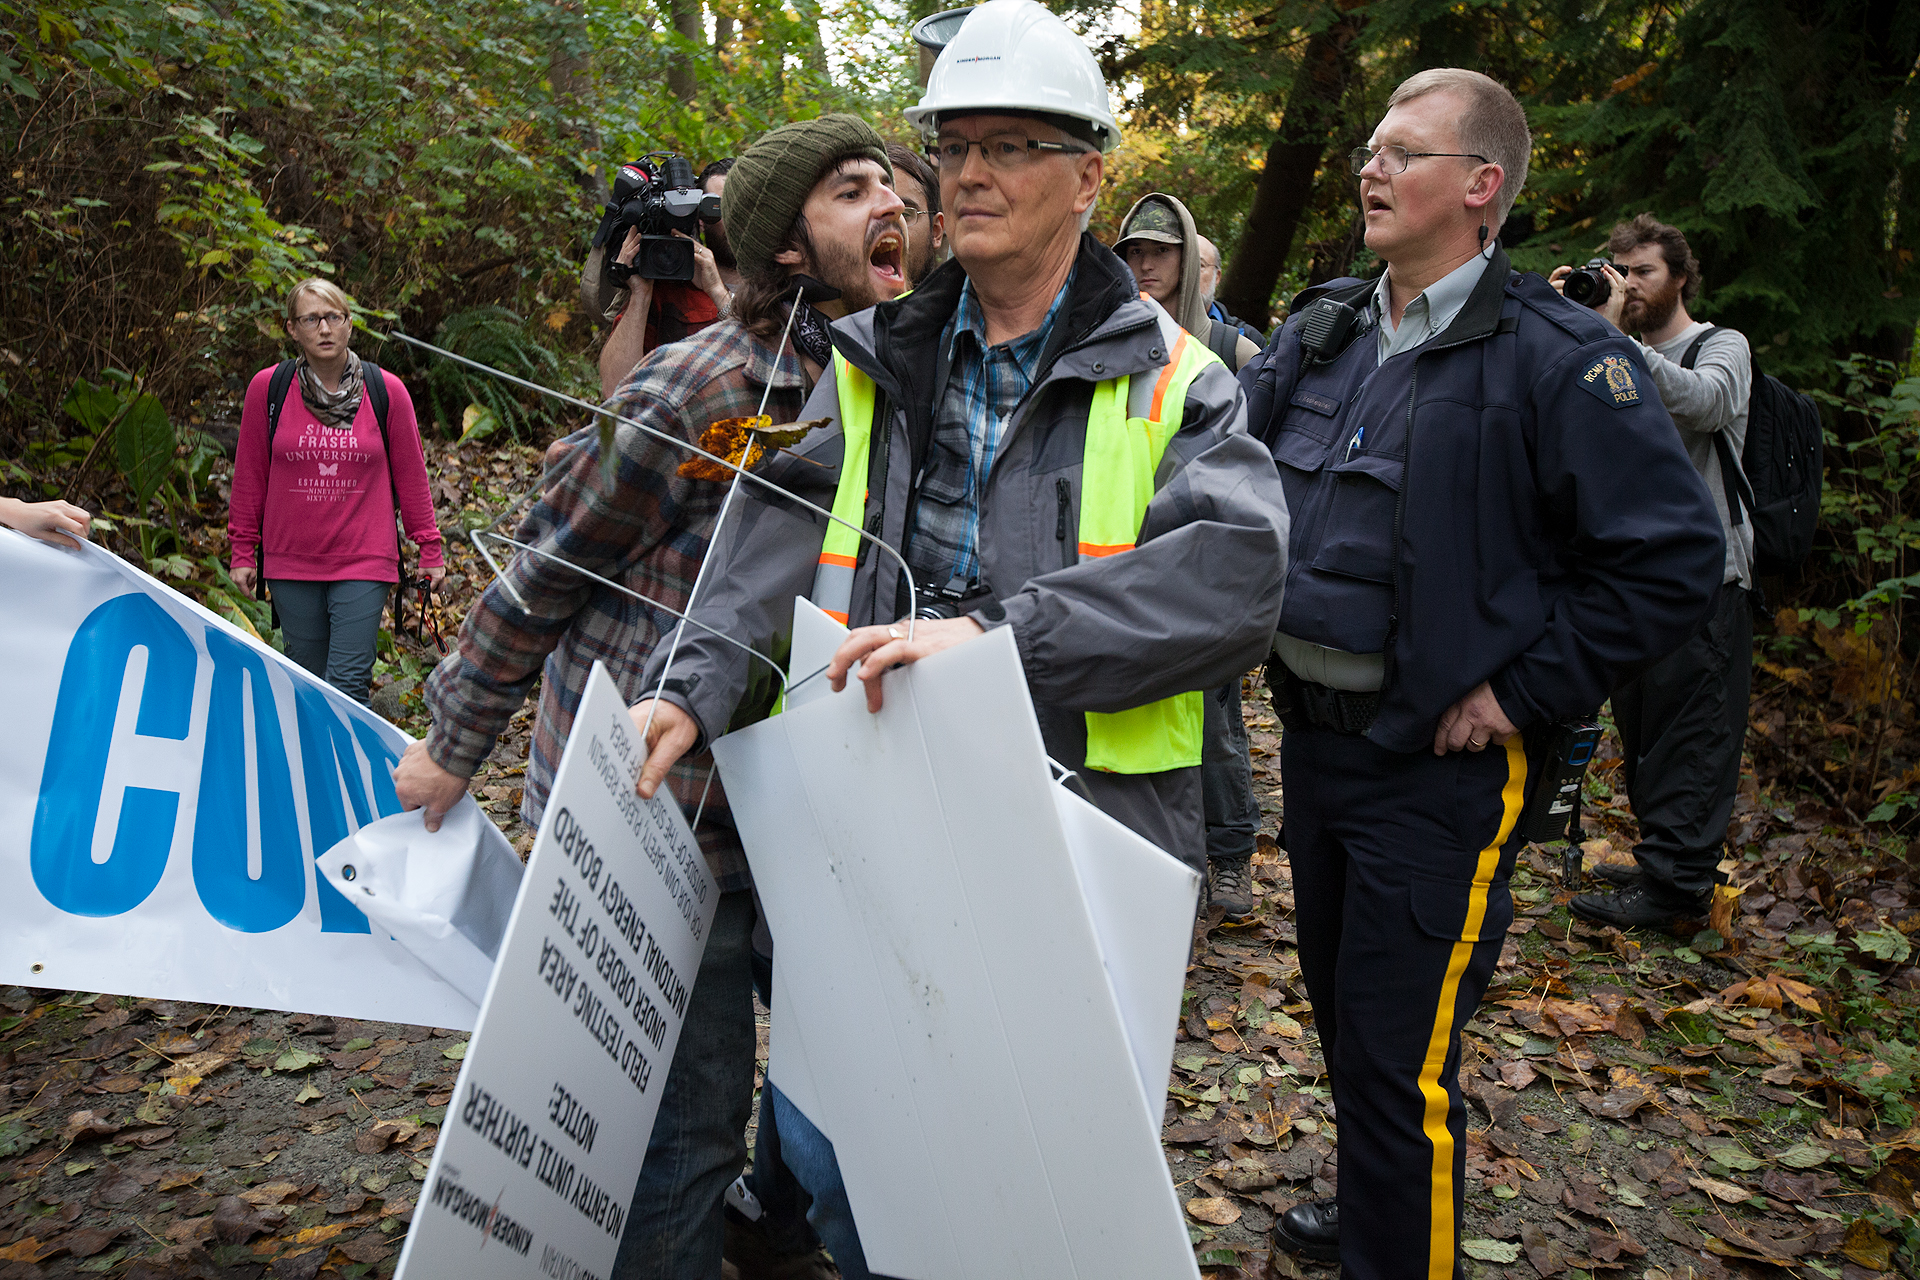 A protestor screams in anger after discovering Kinder Morgan employees once again illegally cutting vegetation in the conservation area.